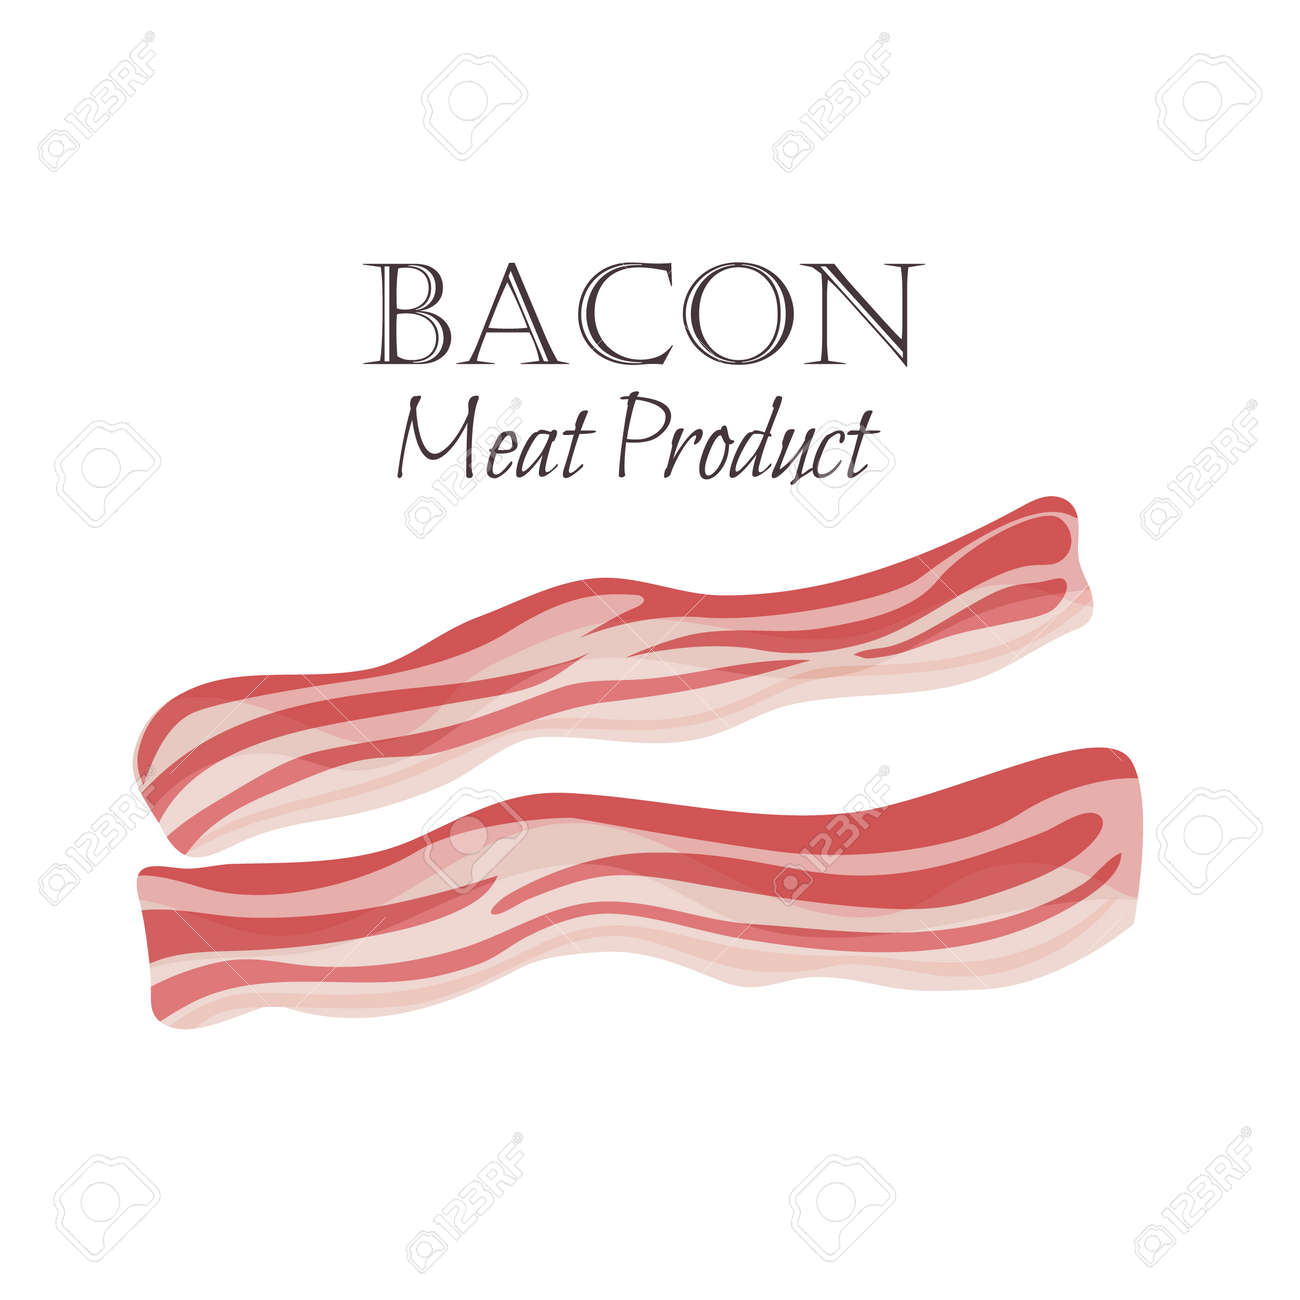 Bacon strips vector illustration in cartoon style. Meat product design. - 65255264